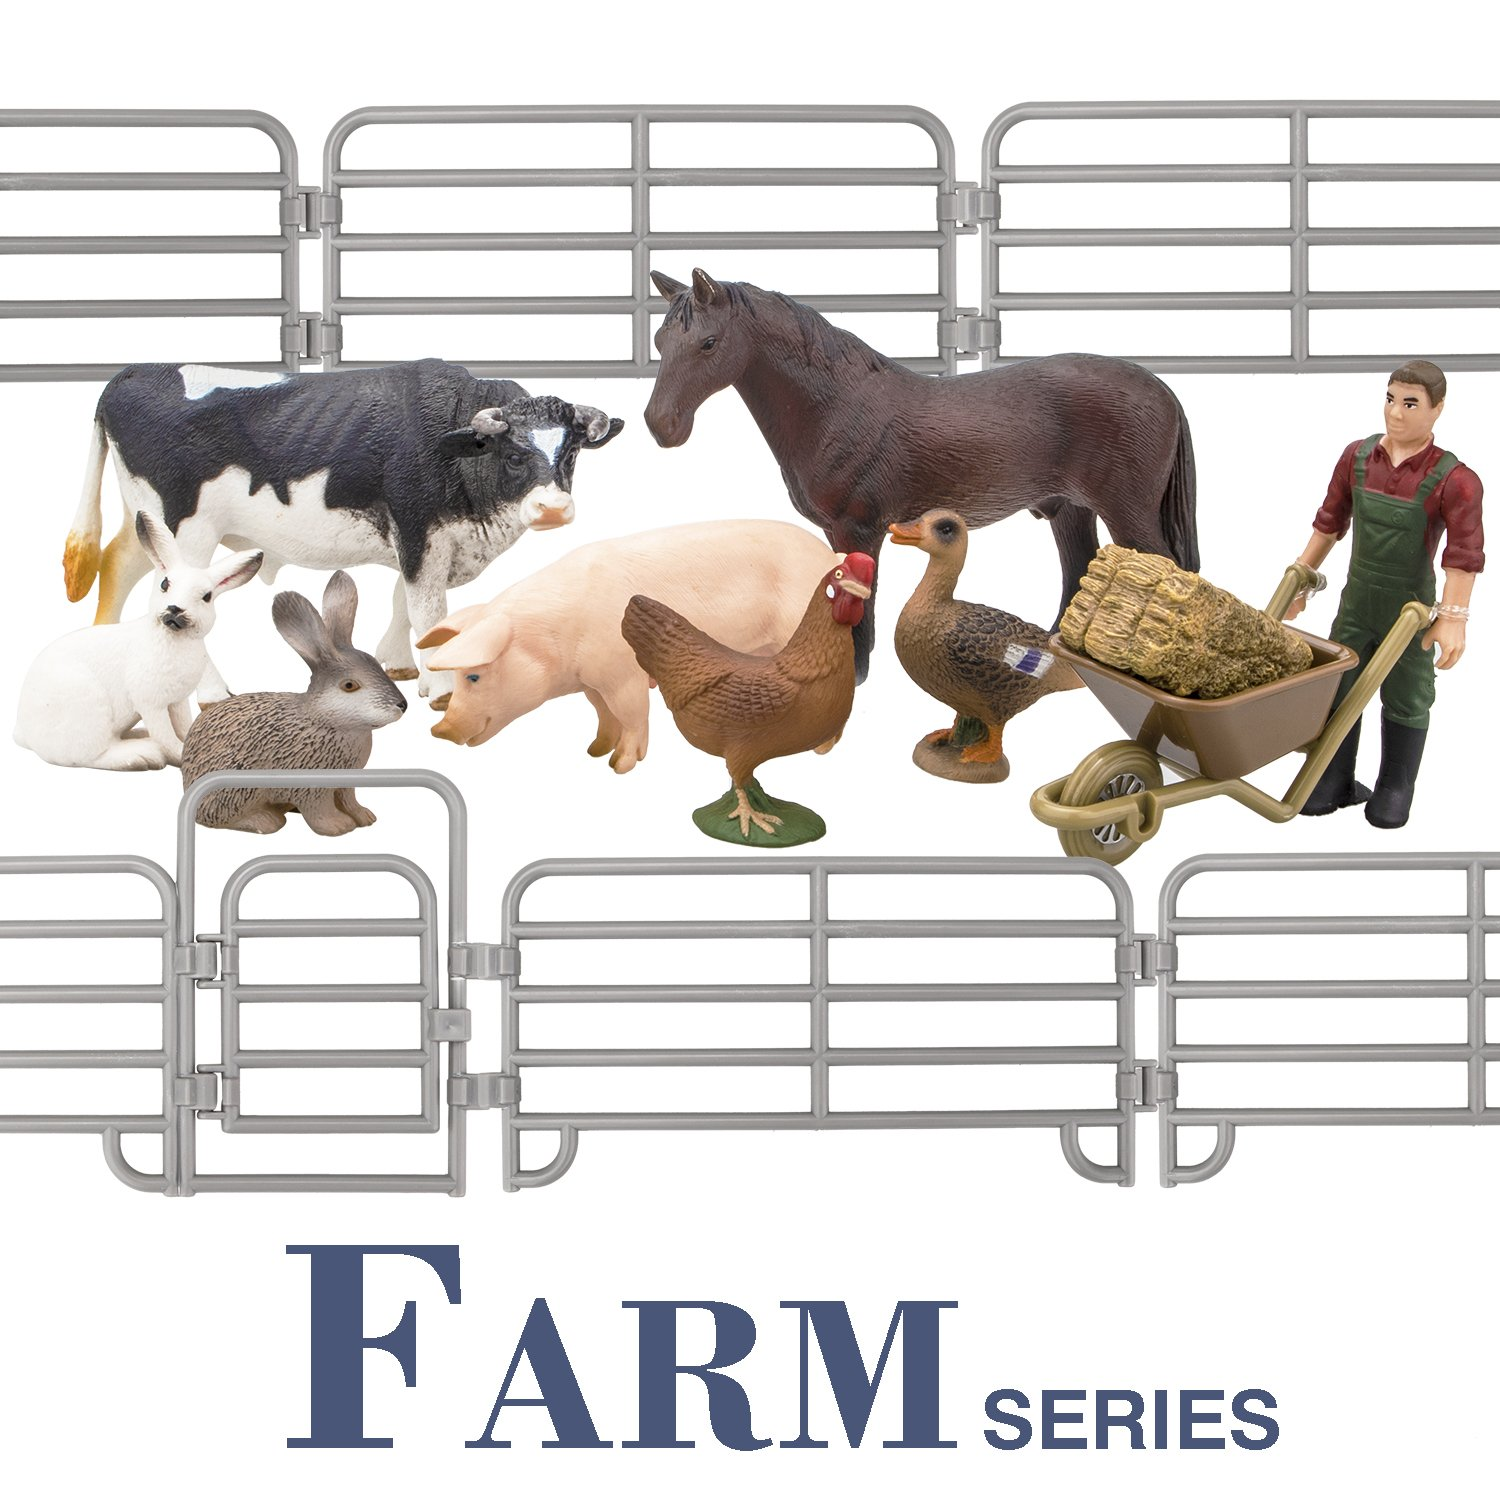 Toymany Farm Animal Figures Gift Toys Set with Fence, Realistic Farm Animals Playset Includes Farmer Horse Cow Pig Hen Duck Rabbits & Accessories, Birthday Gift For Kids Toddlers Children